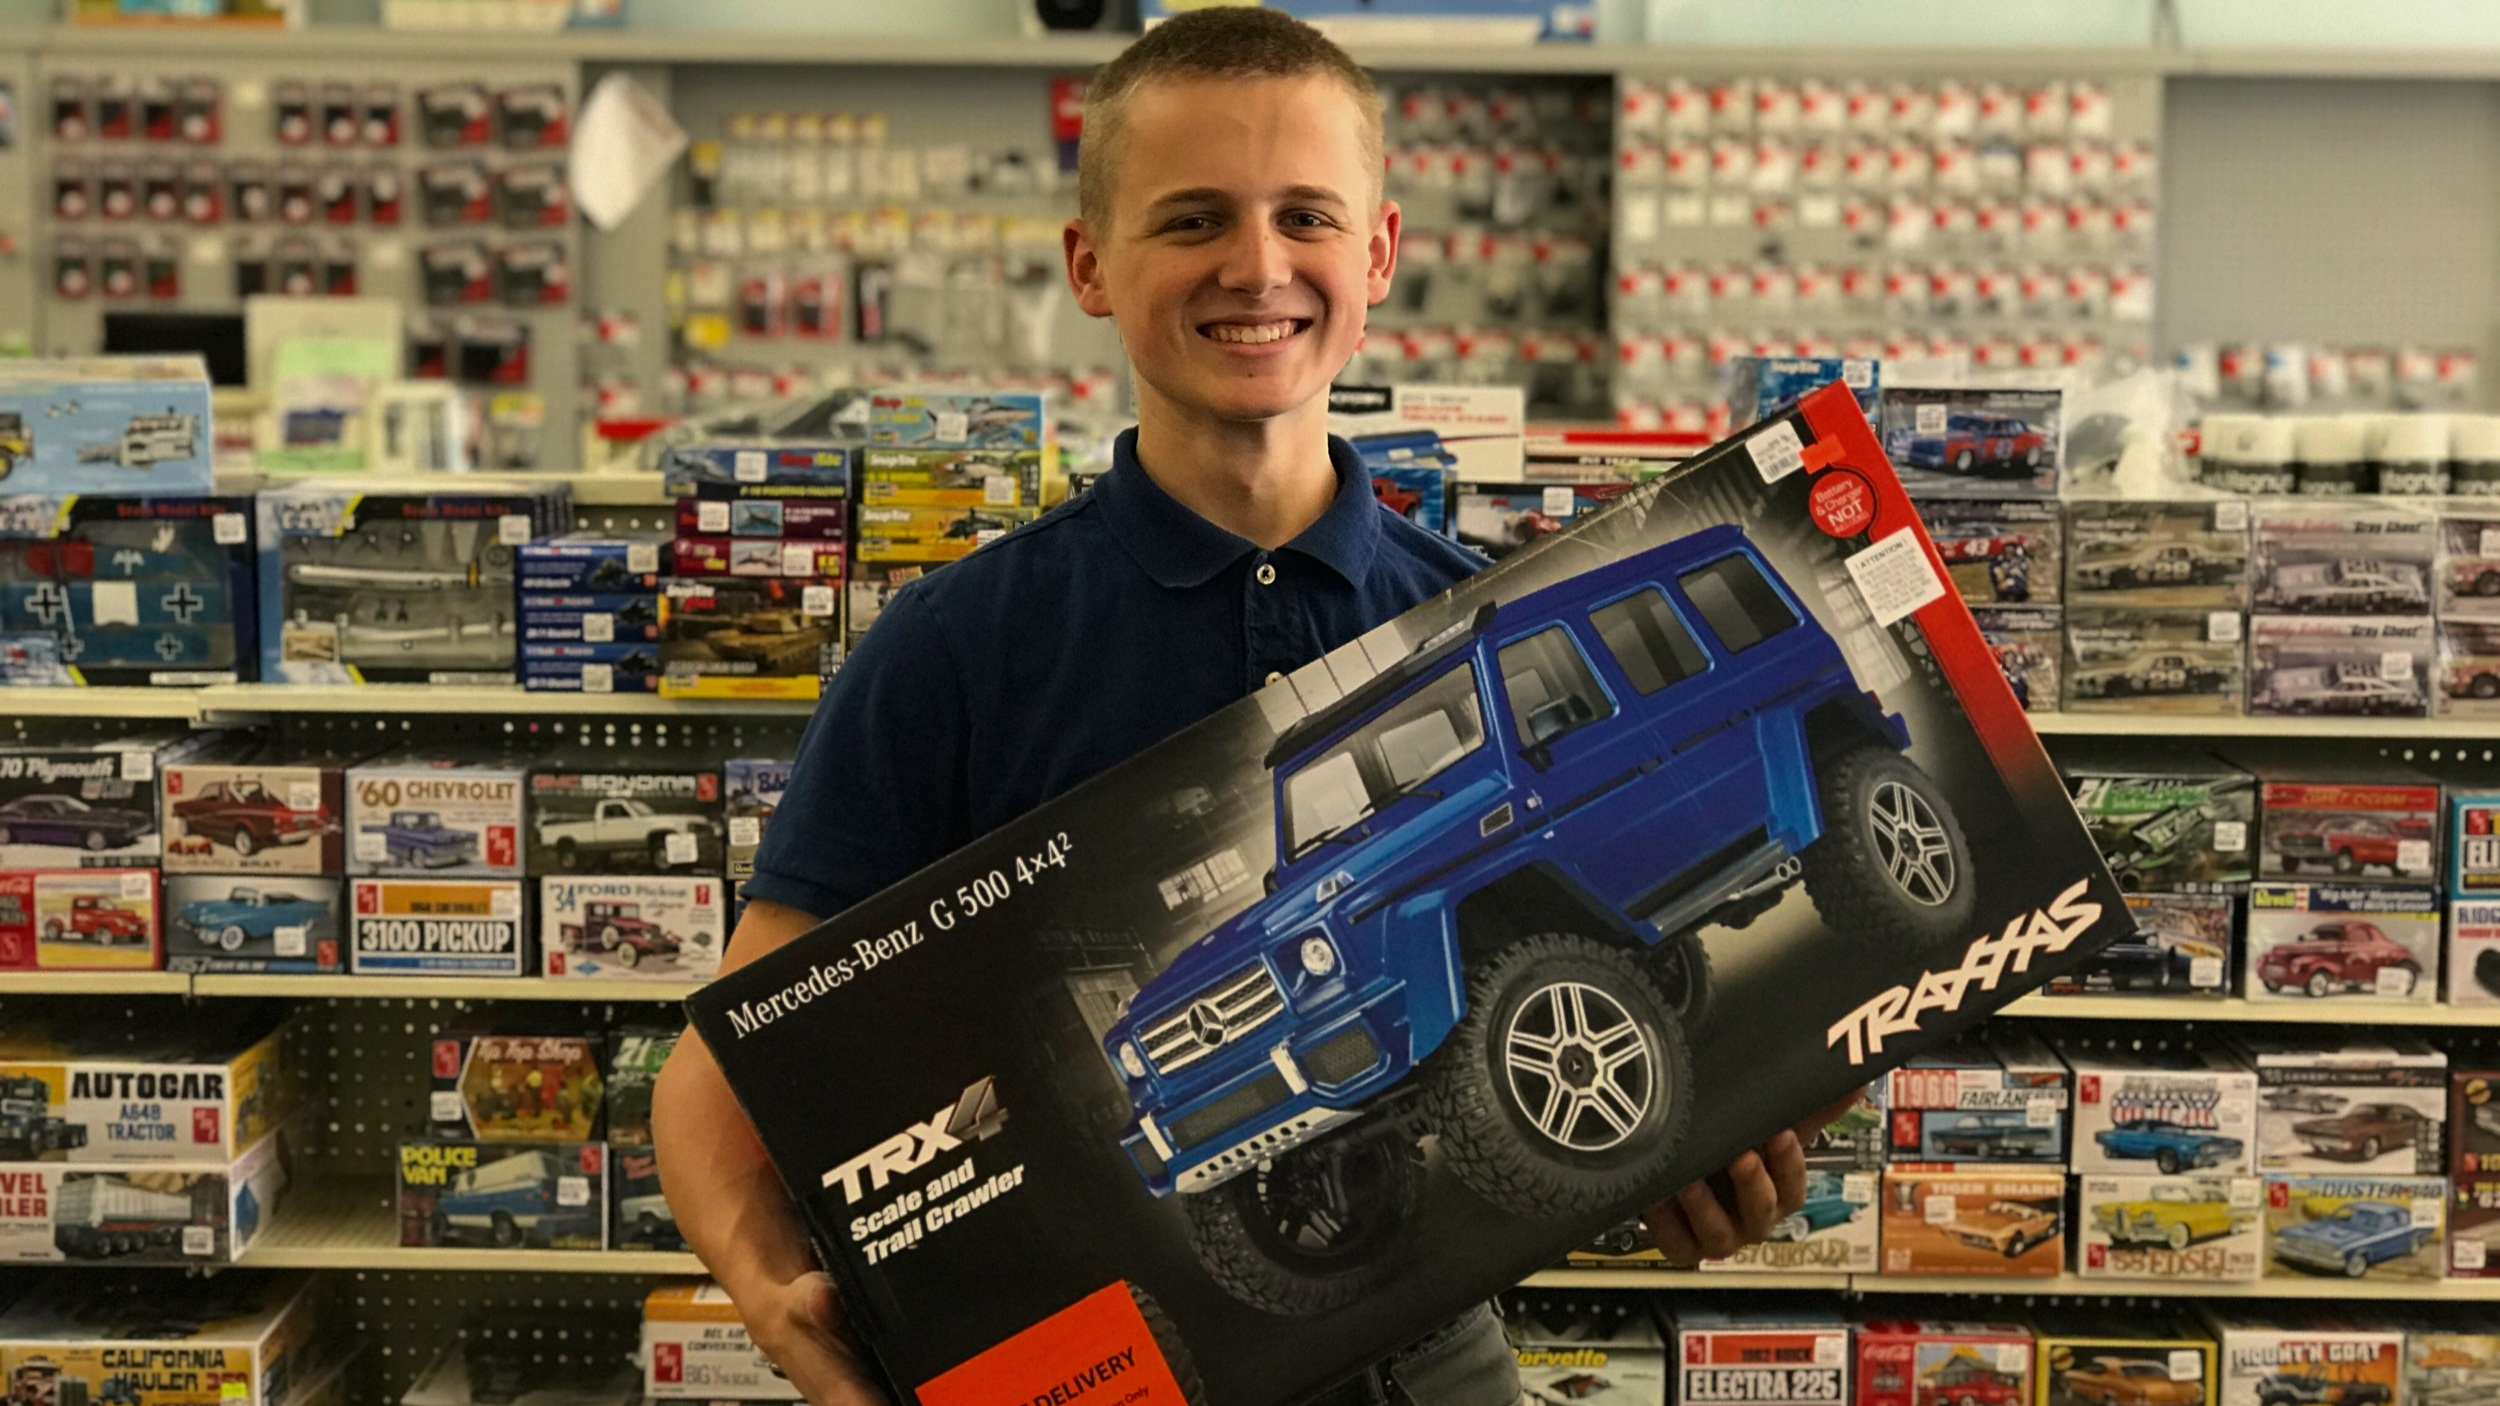 Logan shows off the new Mercedes-Benz G500 from Traxxas.